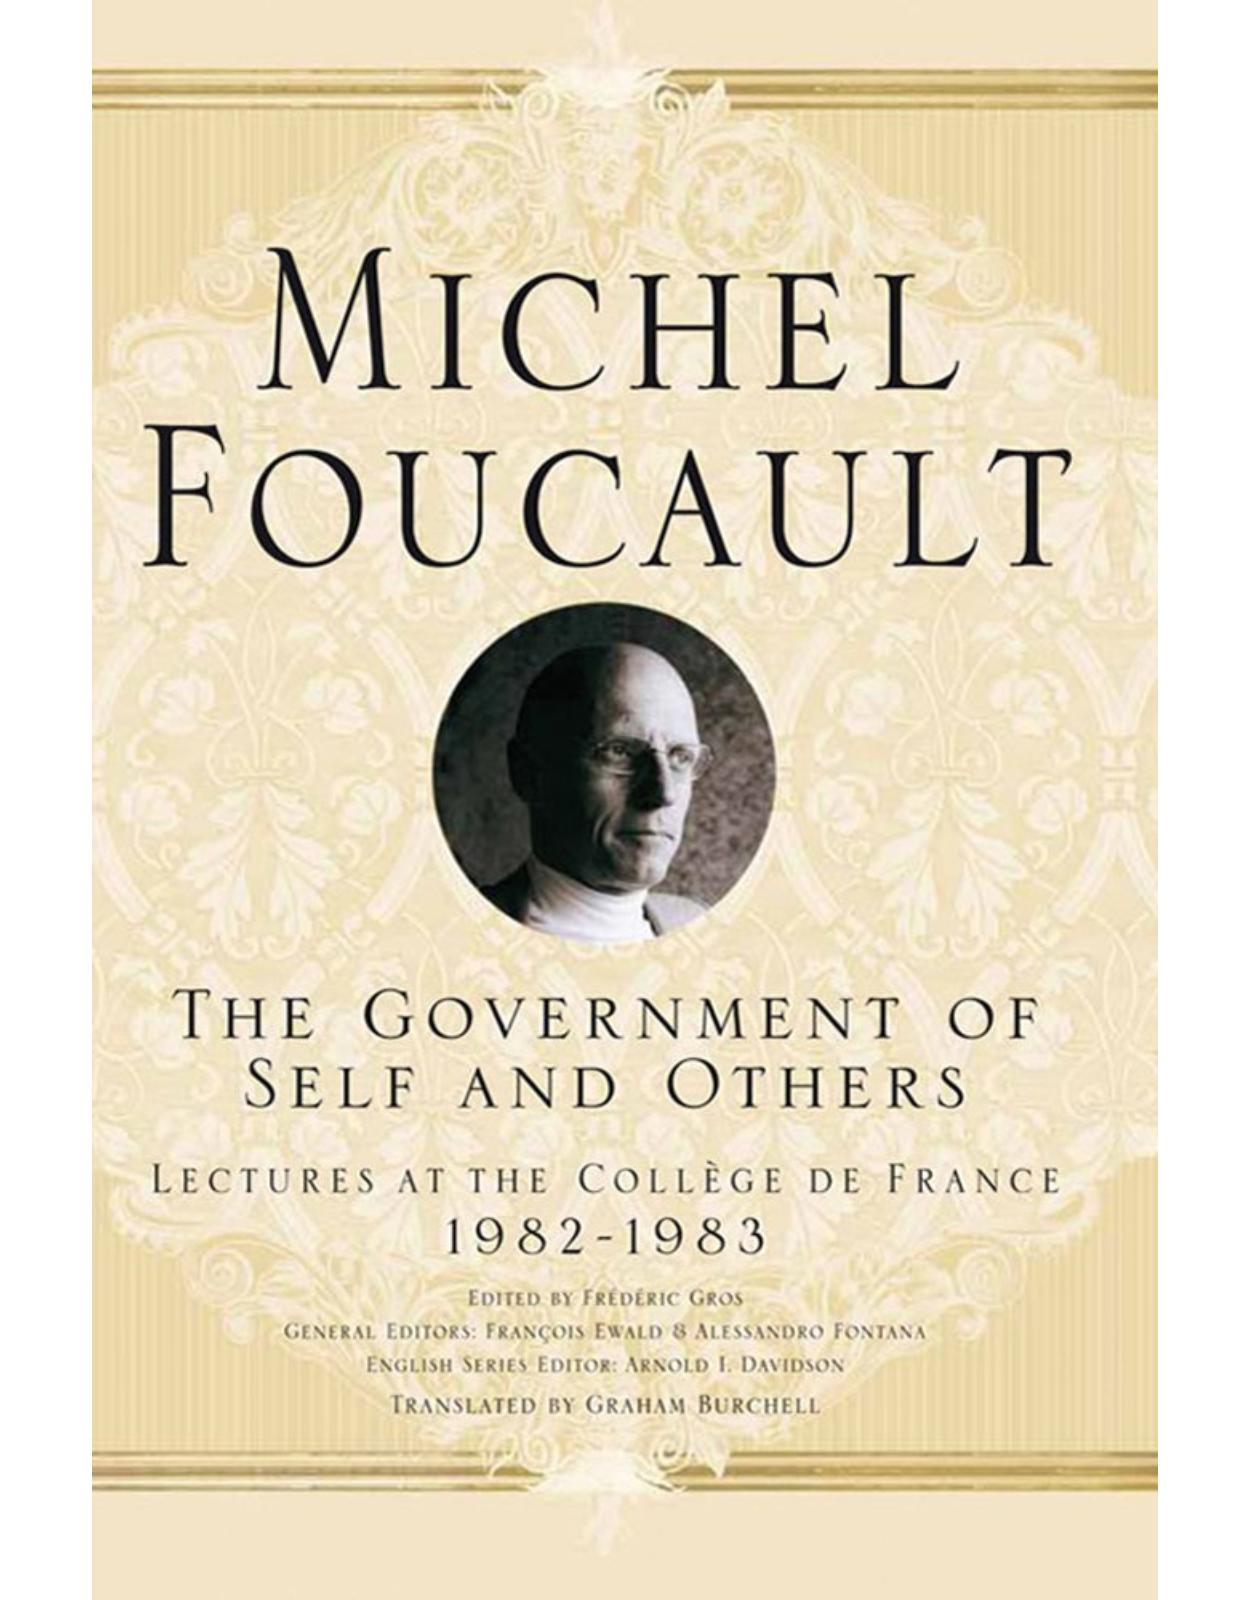 The Government of Self and Others: Lectures at the College de France, 1982-1983 (Michel Foucault: Lectures at the College De France)